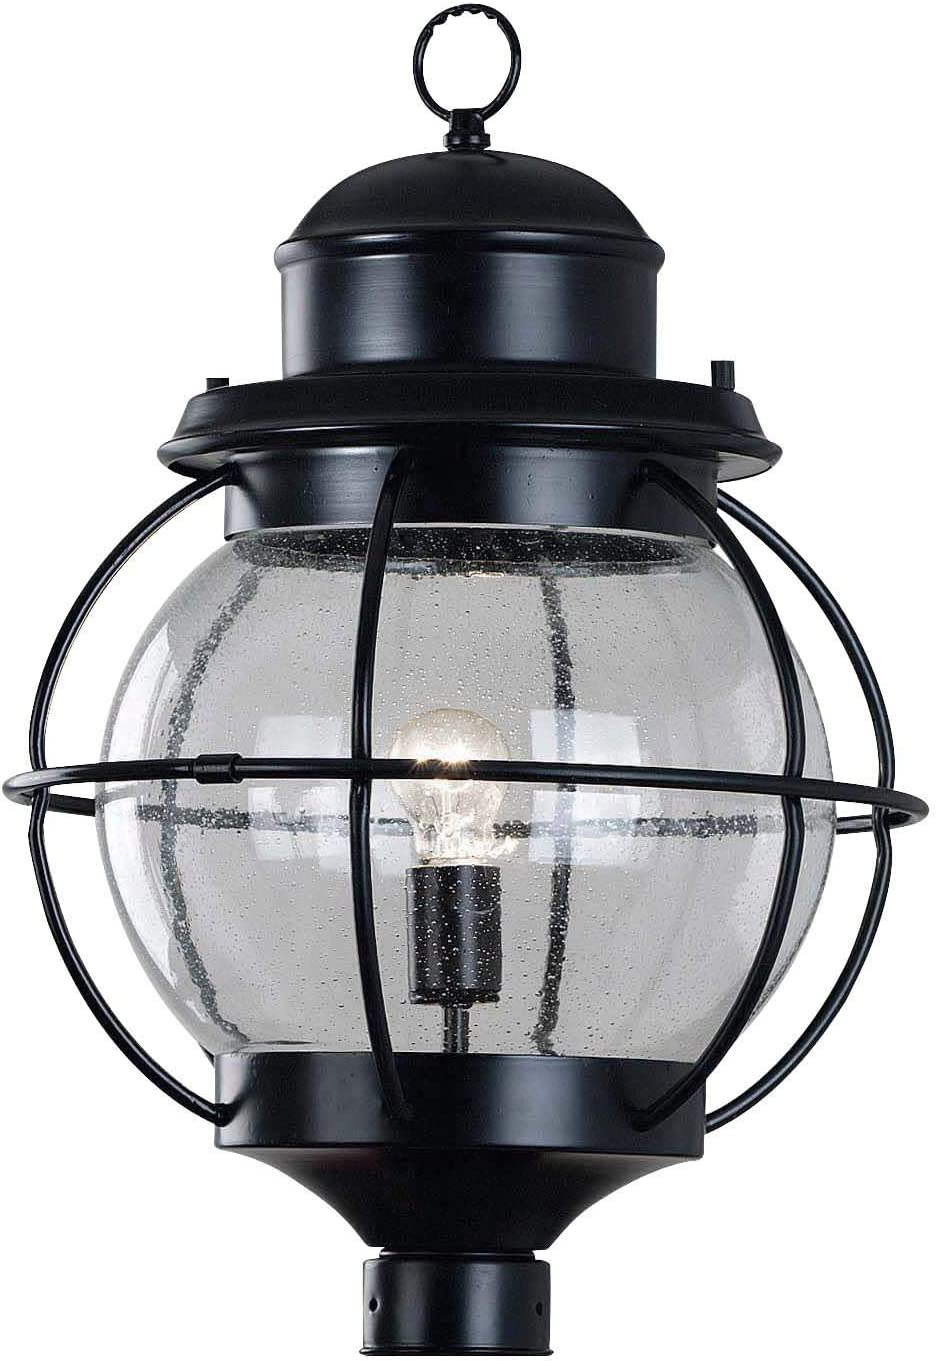 Kenroy Home 90967BL Hatteras Lanterns, 23.5 Inch Height, 15 Inch Diameter, Black